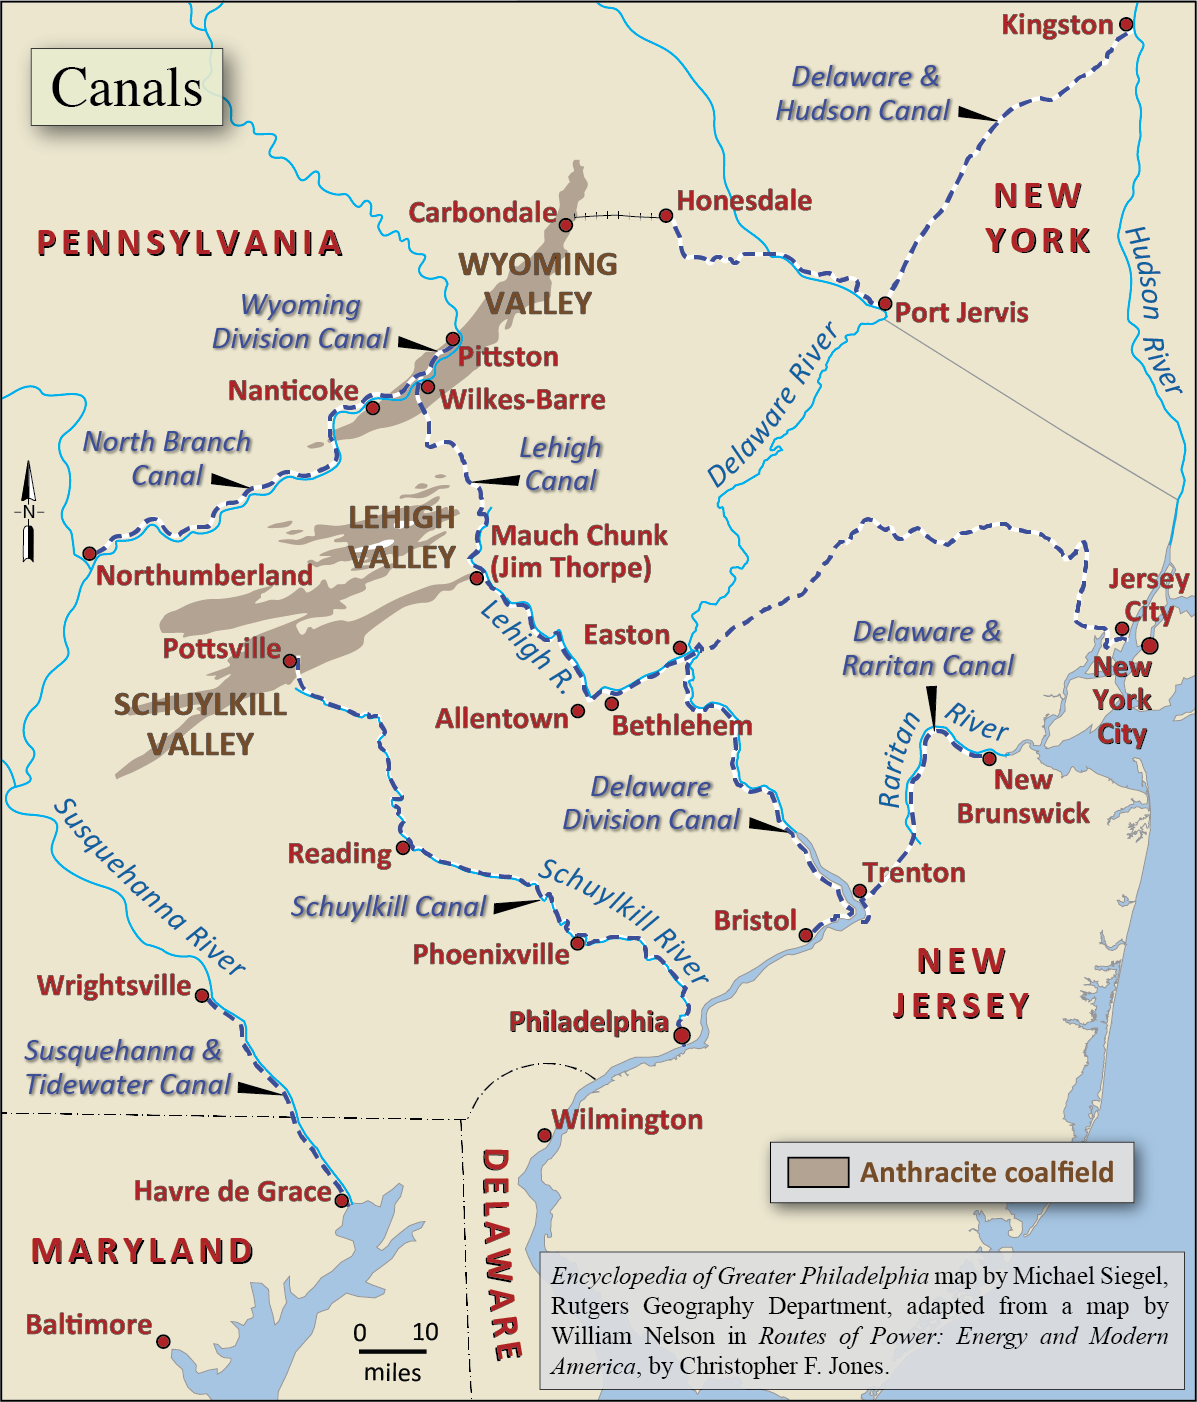 Canals Encyclopedia of Greater Philadelphia